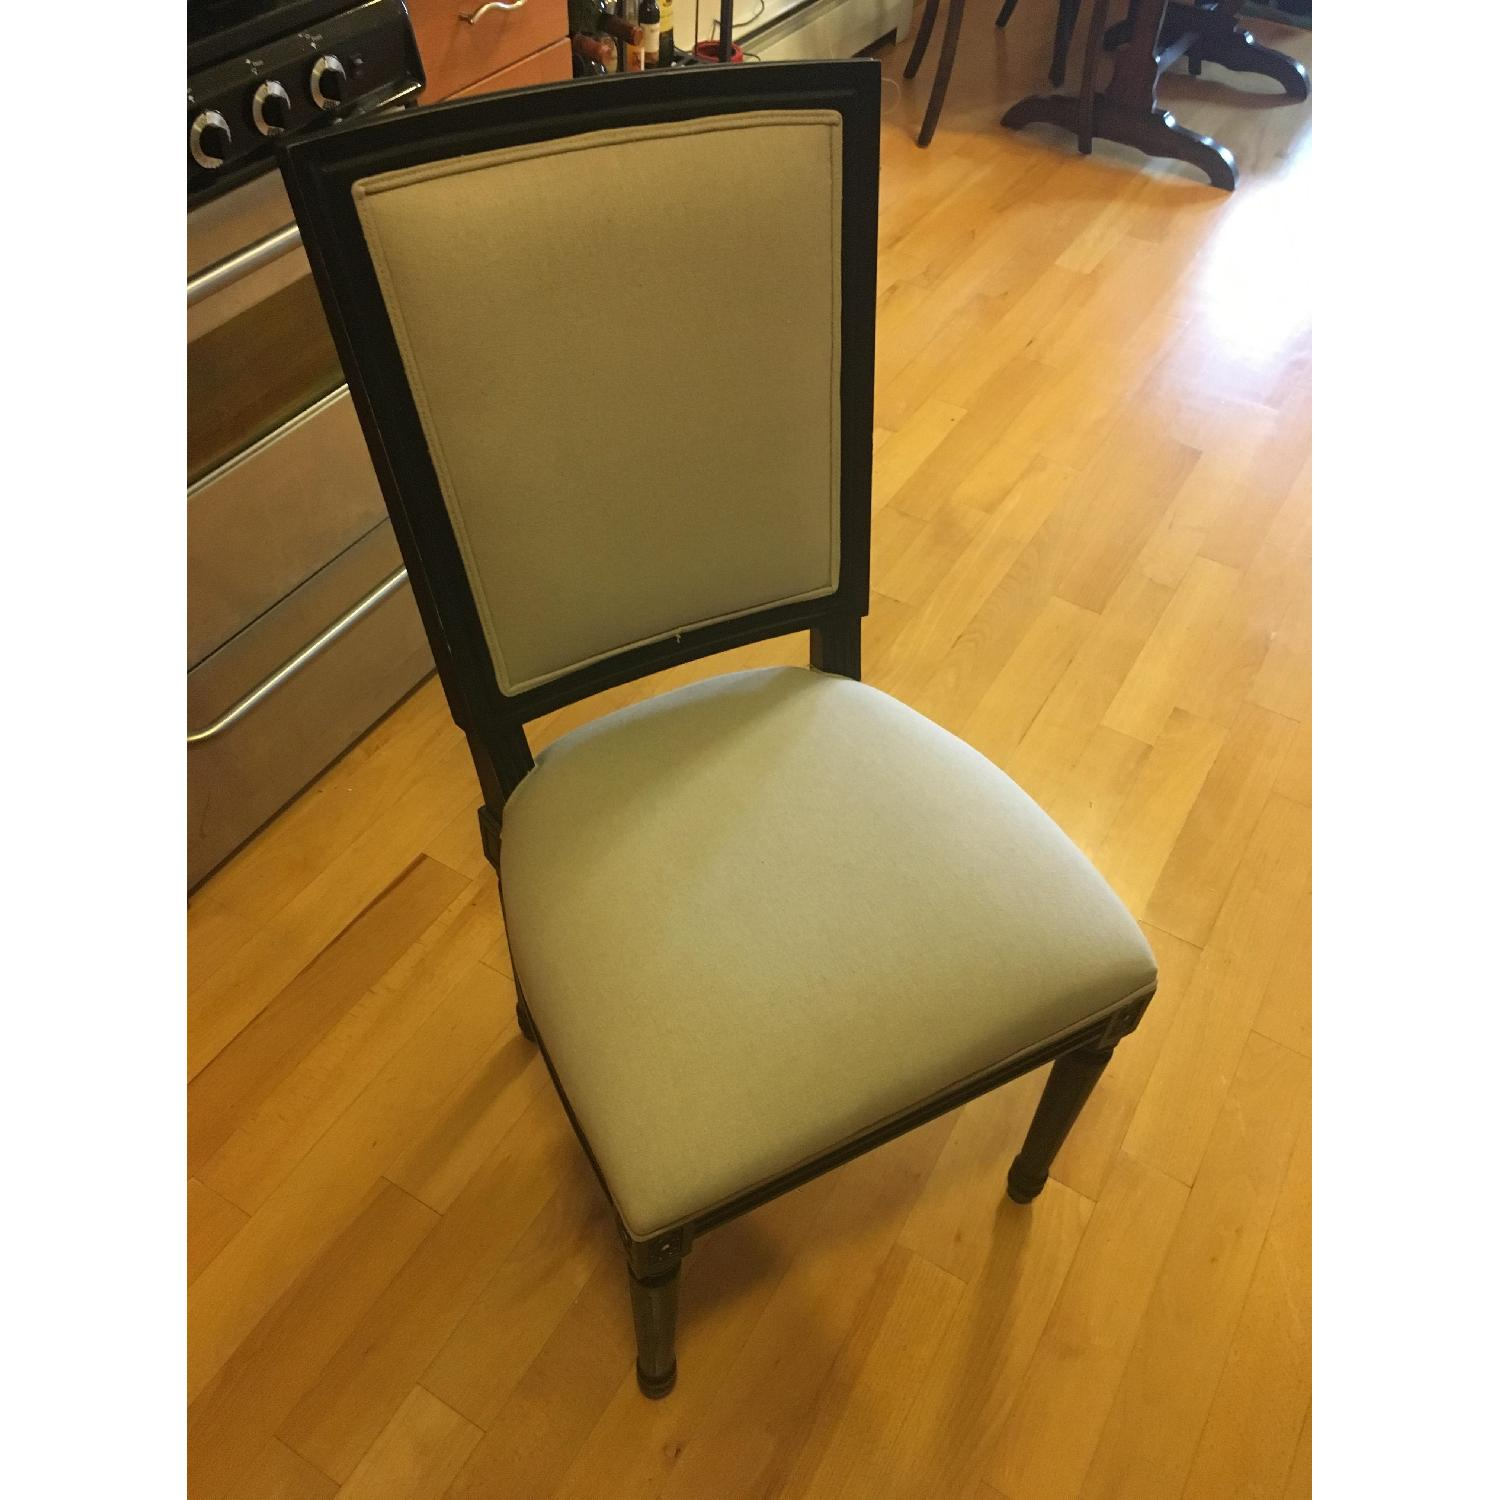 Safavieh Dining Chairs in Black & Gray - image-1